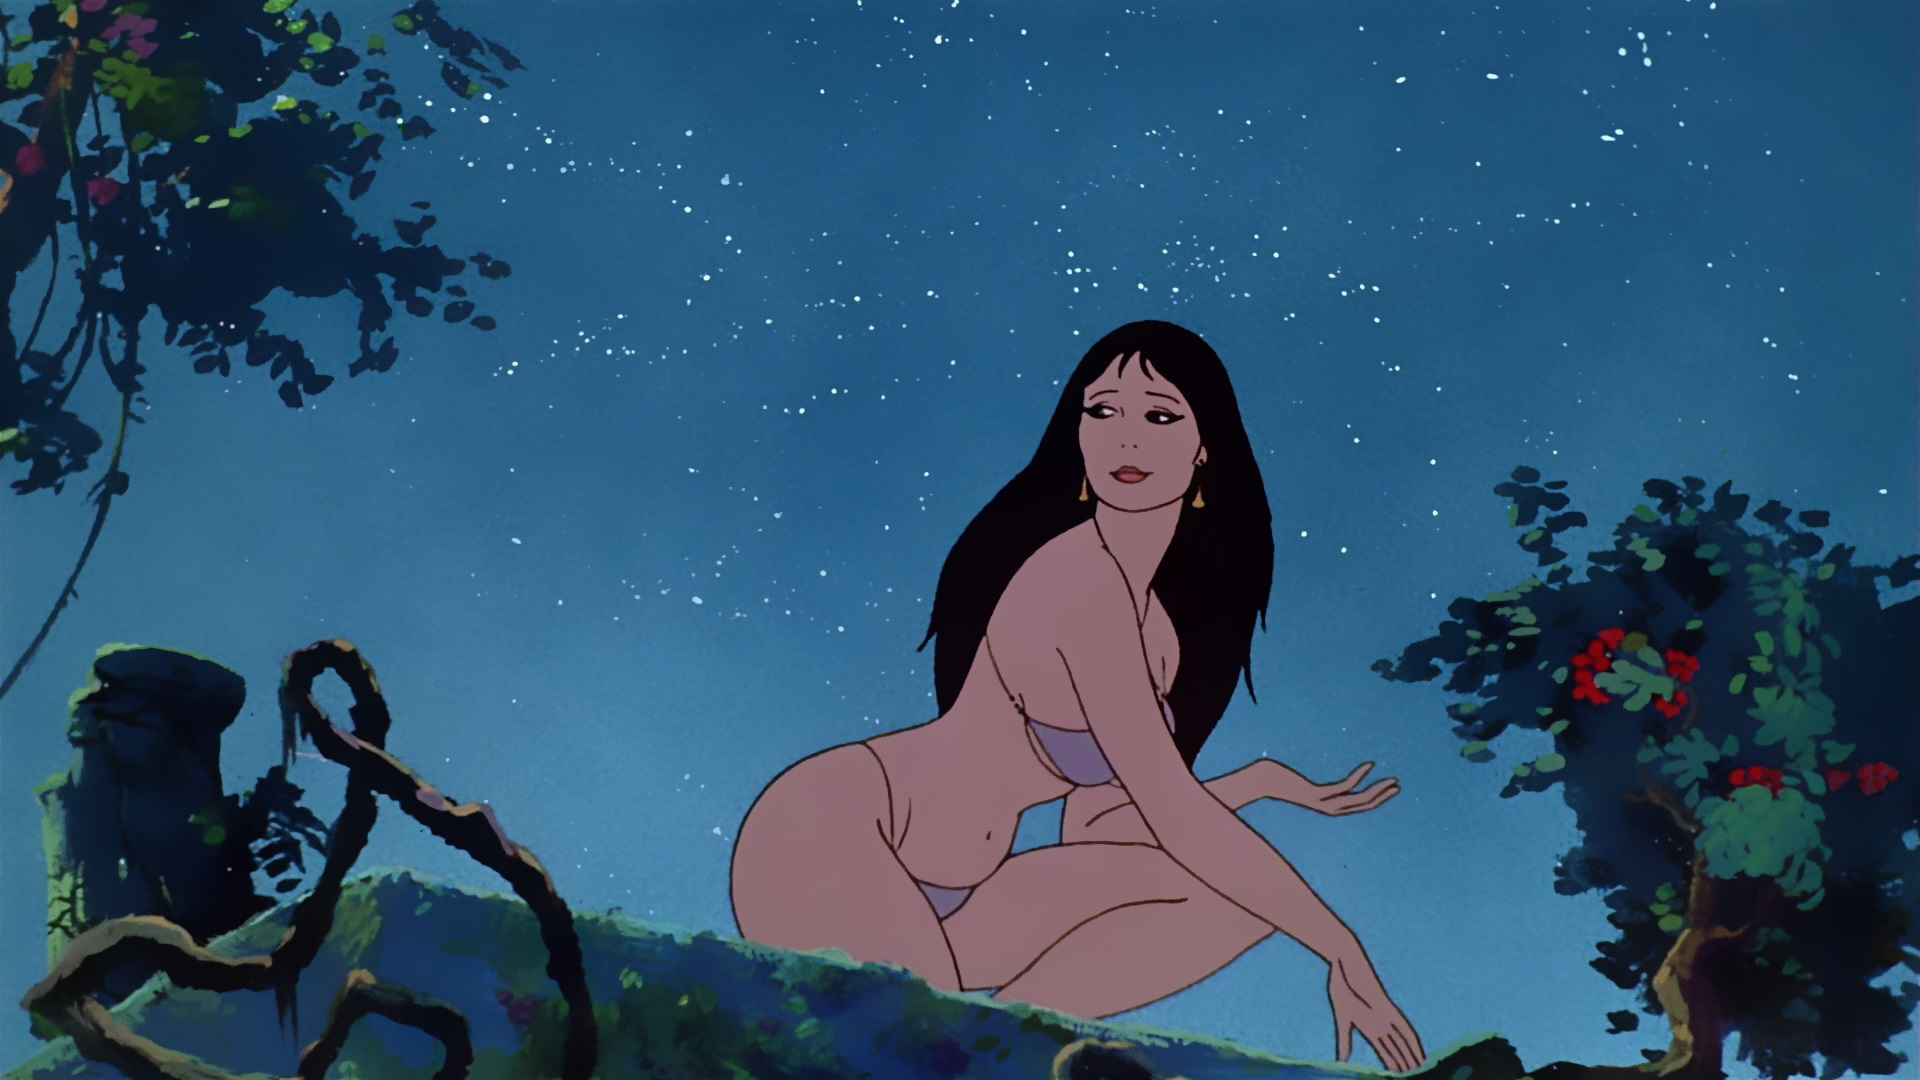 Princess Teegra (voiced by Cynthia Leake) Fire and Ice (1983) - where Frank Frazetta made the discovery that real women weren't quite the way he'd been drawing them for years